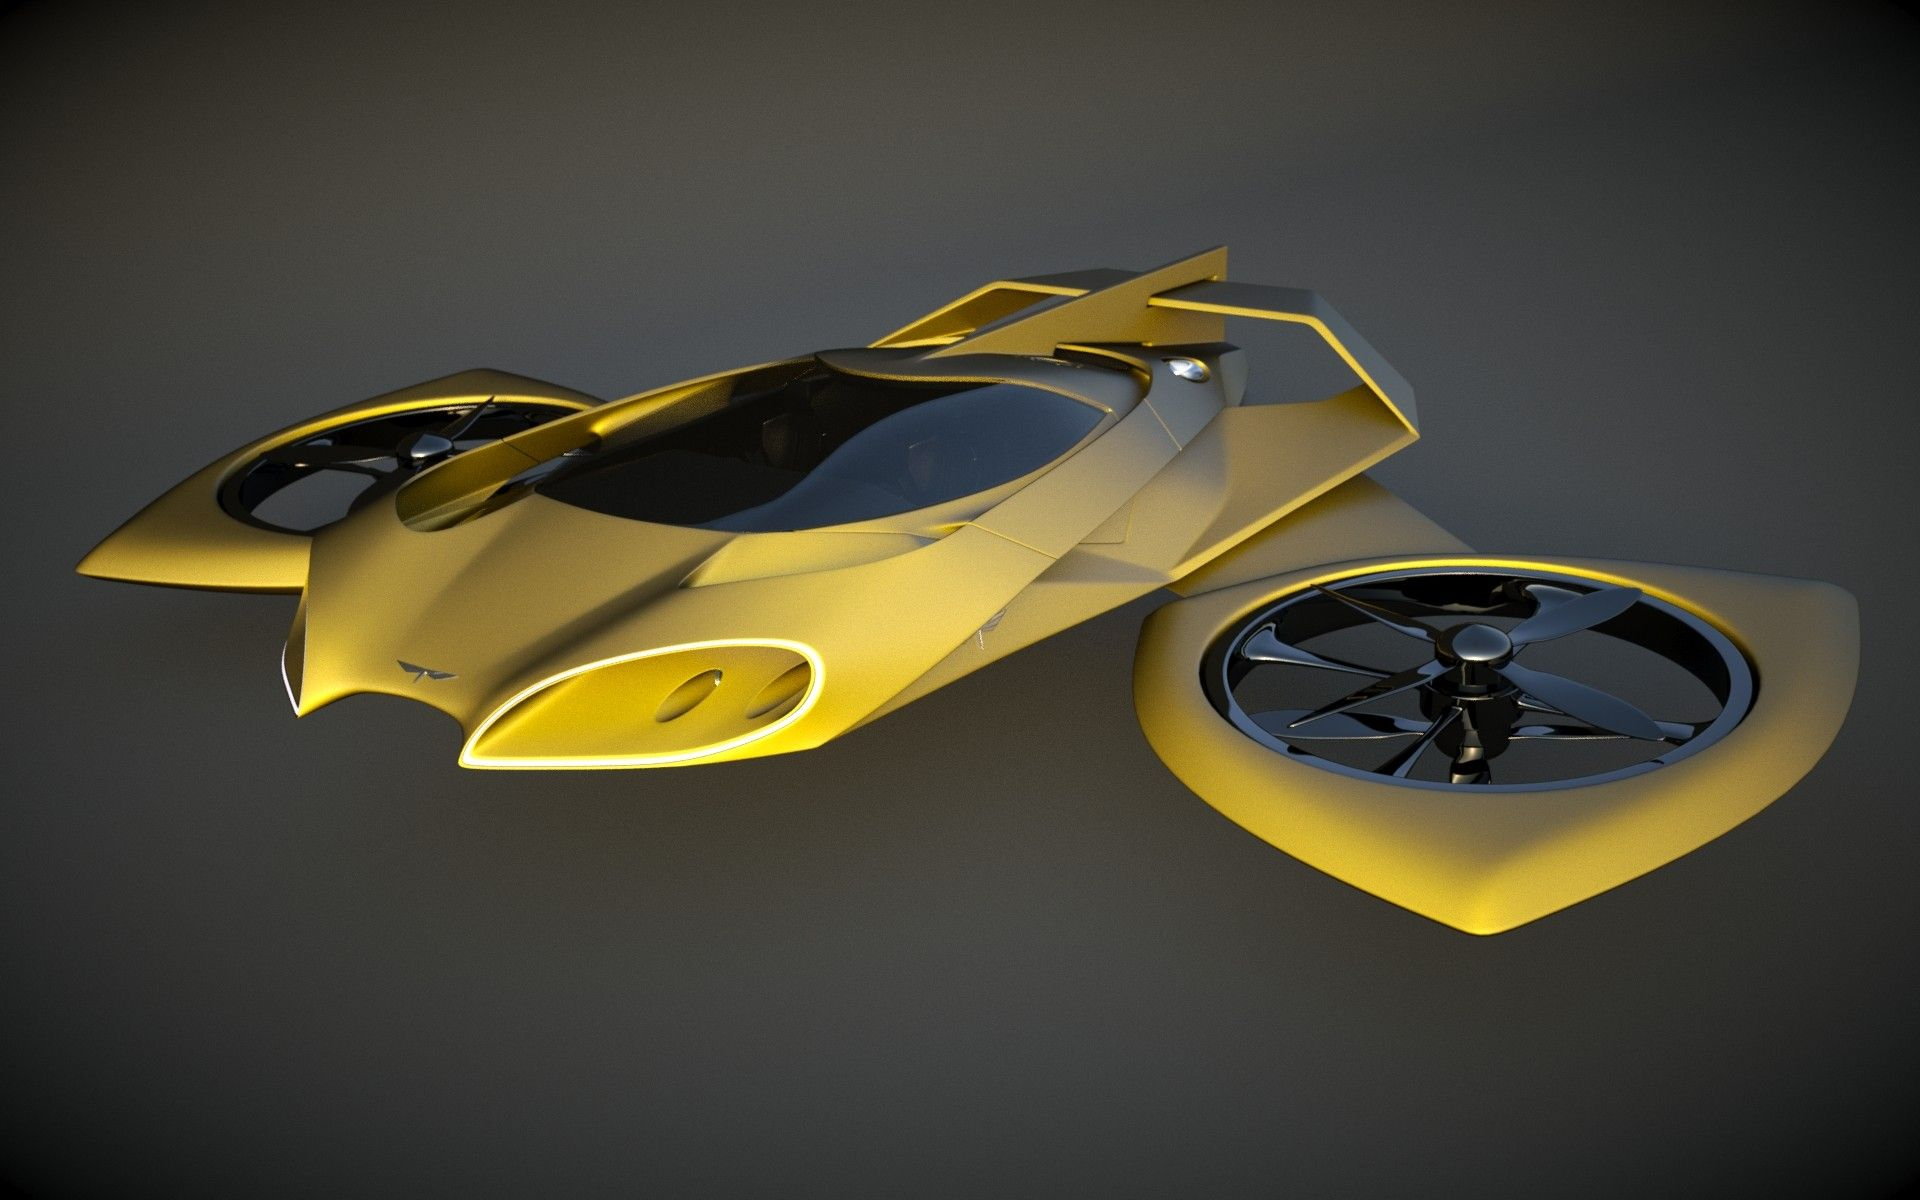 heli designed 3d model (With images) Flying car